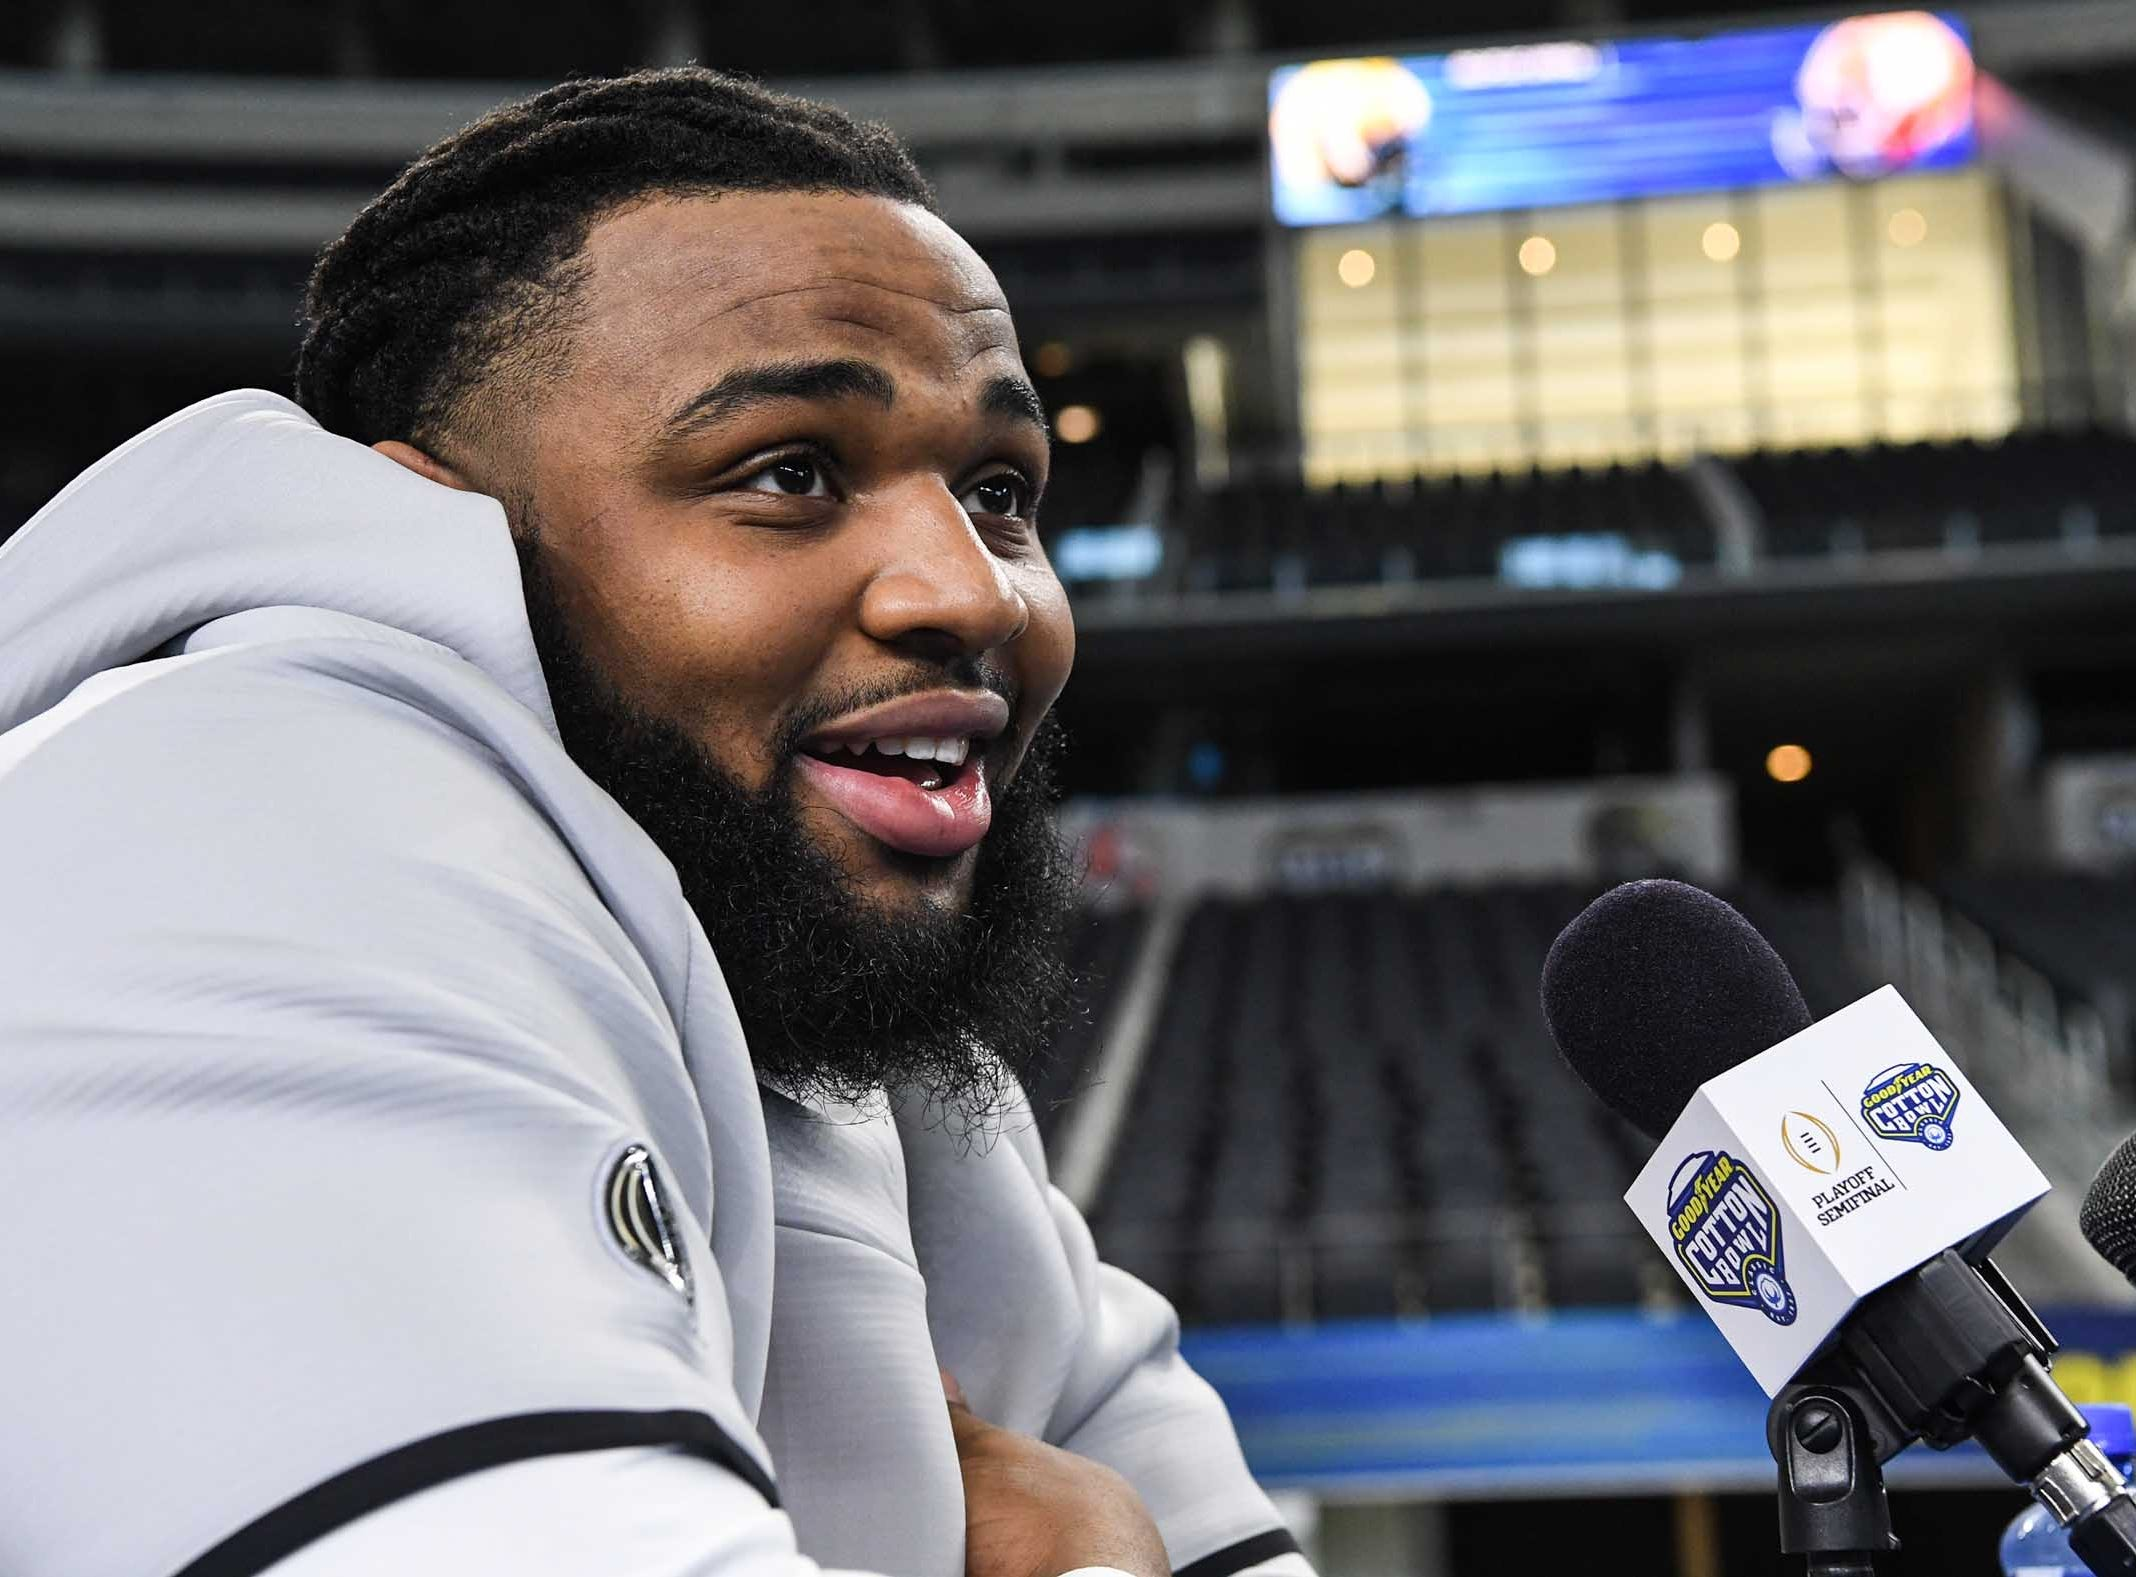 Clemson defensive lineman Christian Wilkins during Media Day for Clemson and Notre Dame at the AT&T Stadium in Dallas December 27, 2018.